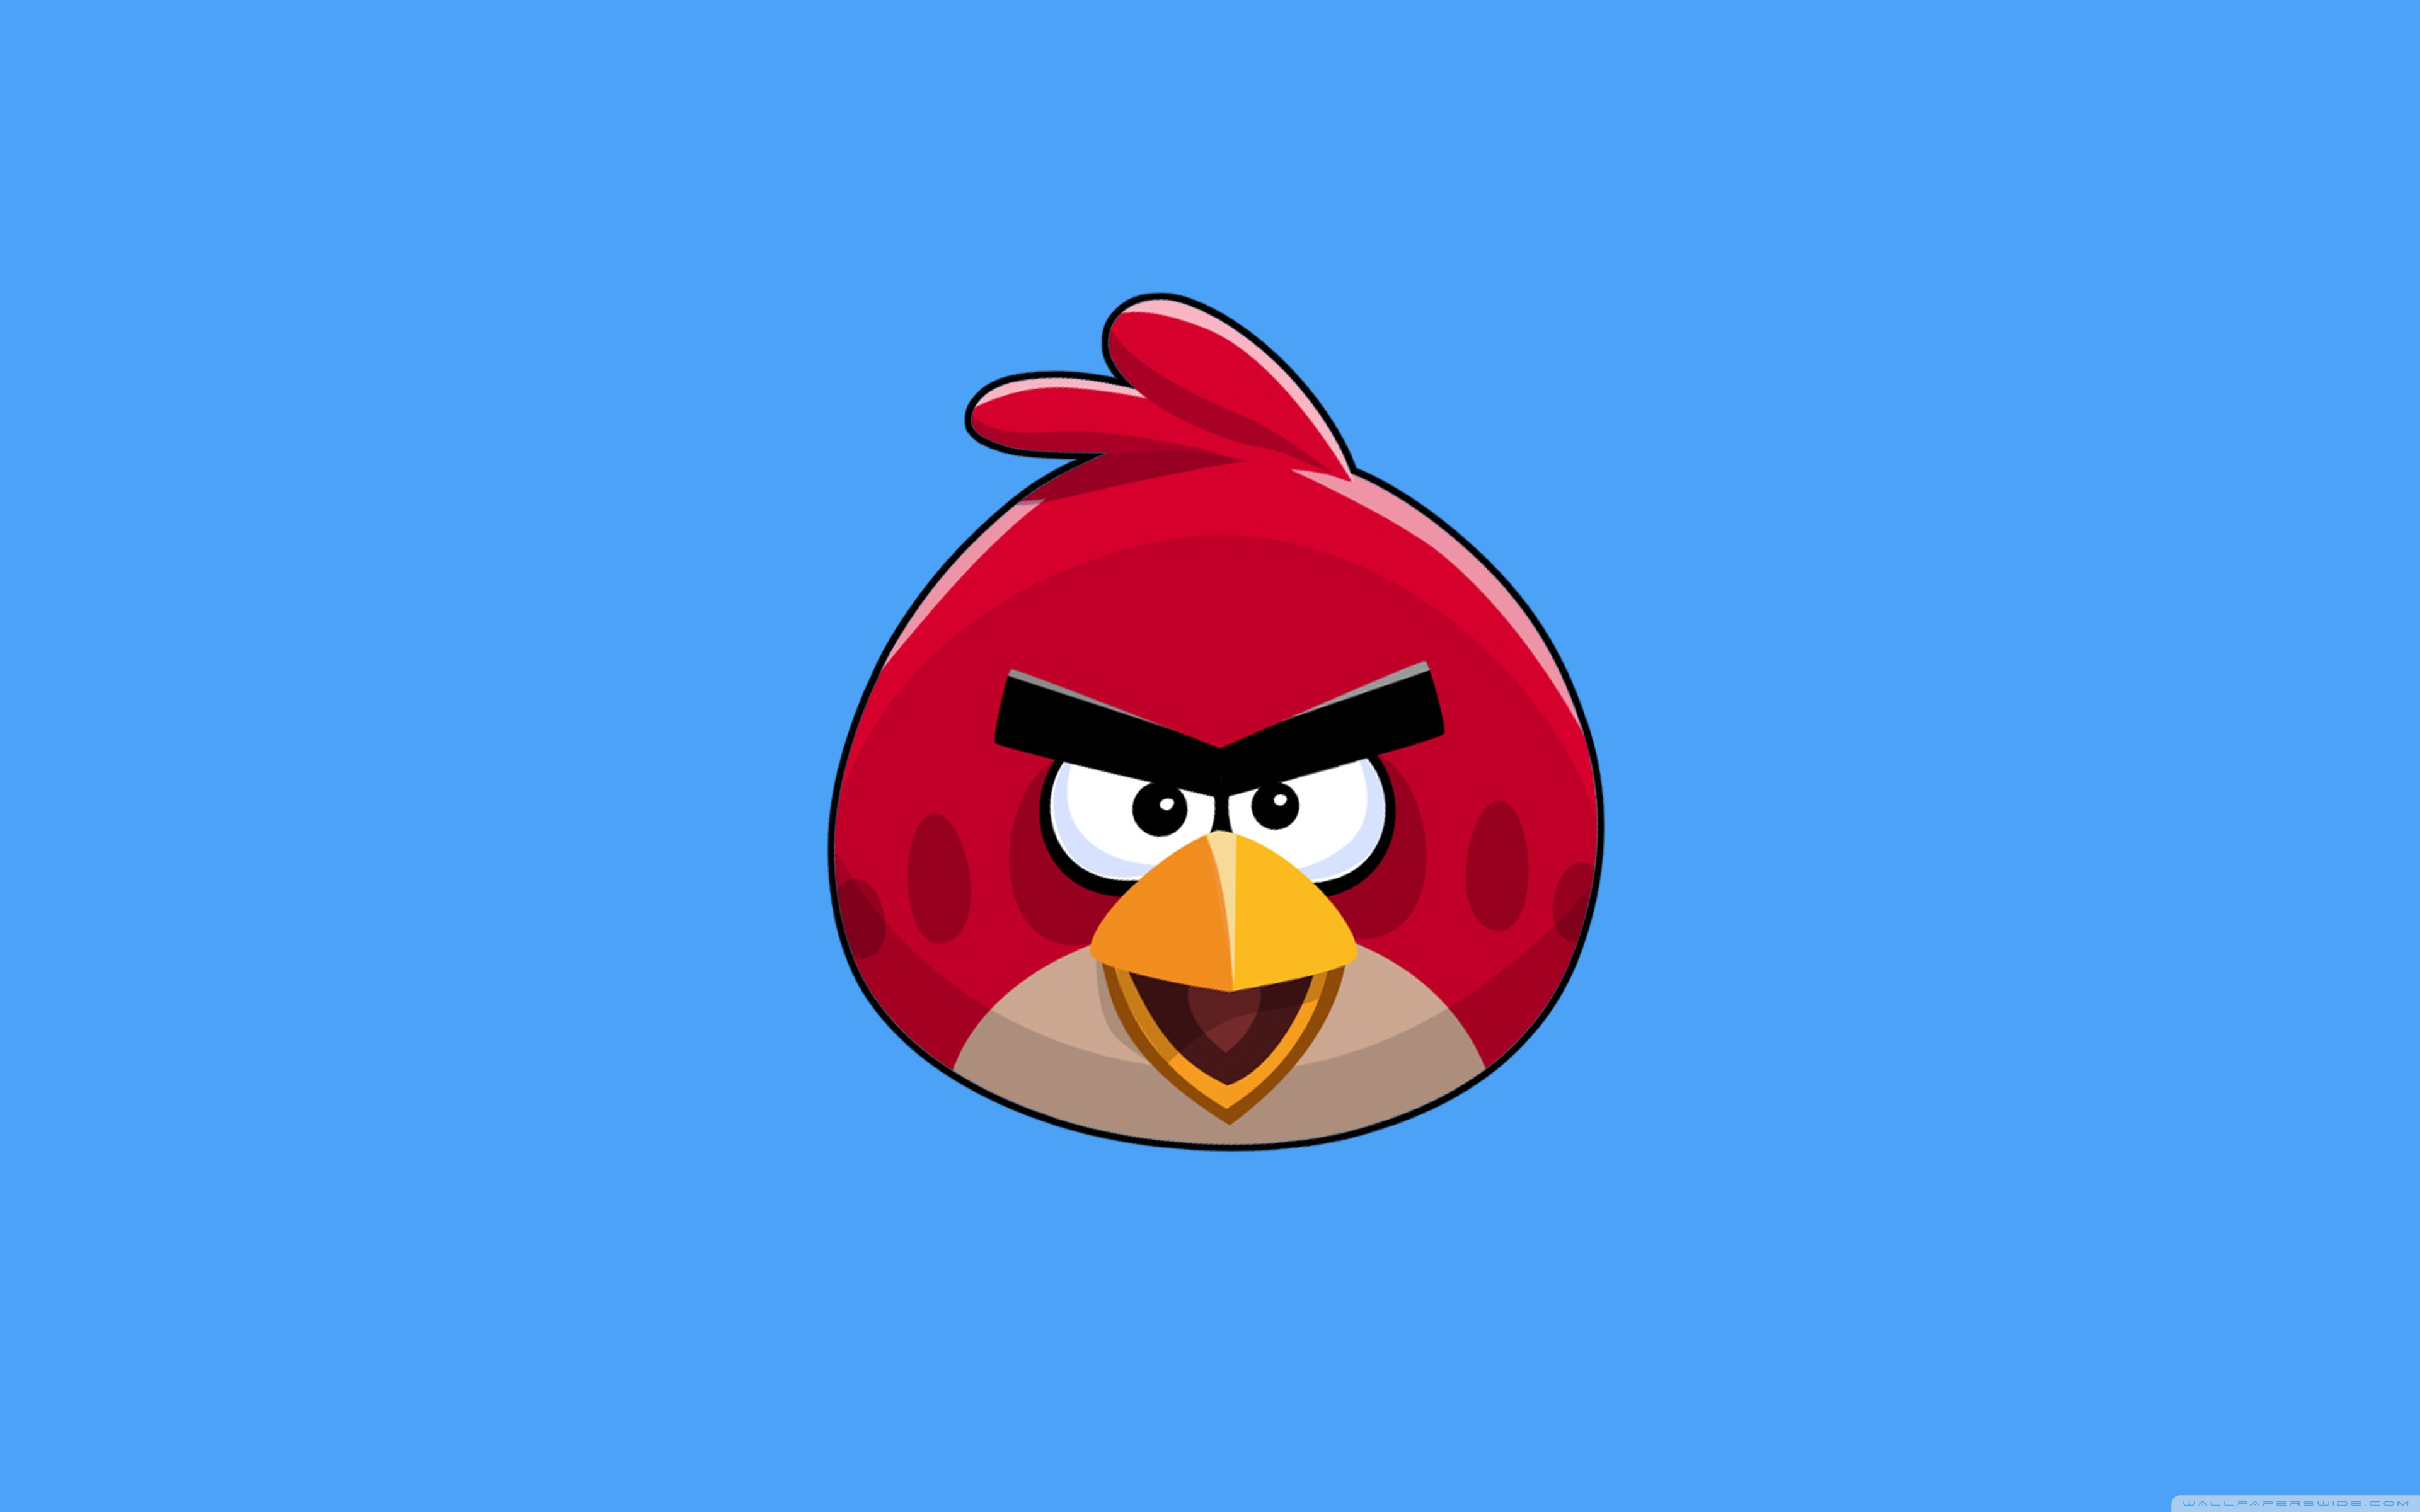 Free Angry Birds Hd Wallpaper [3840x2400] For Your